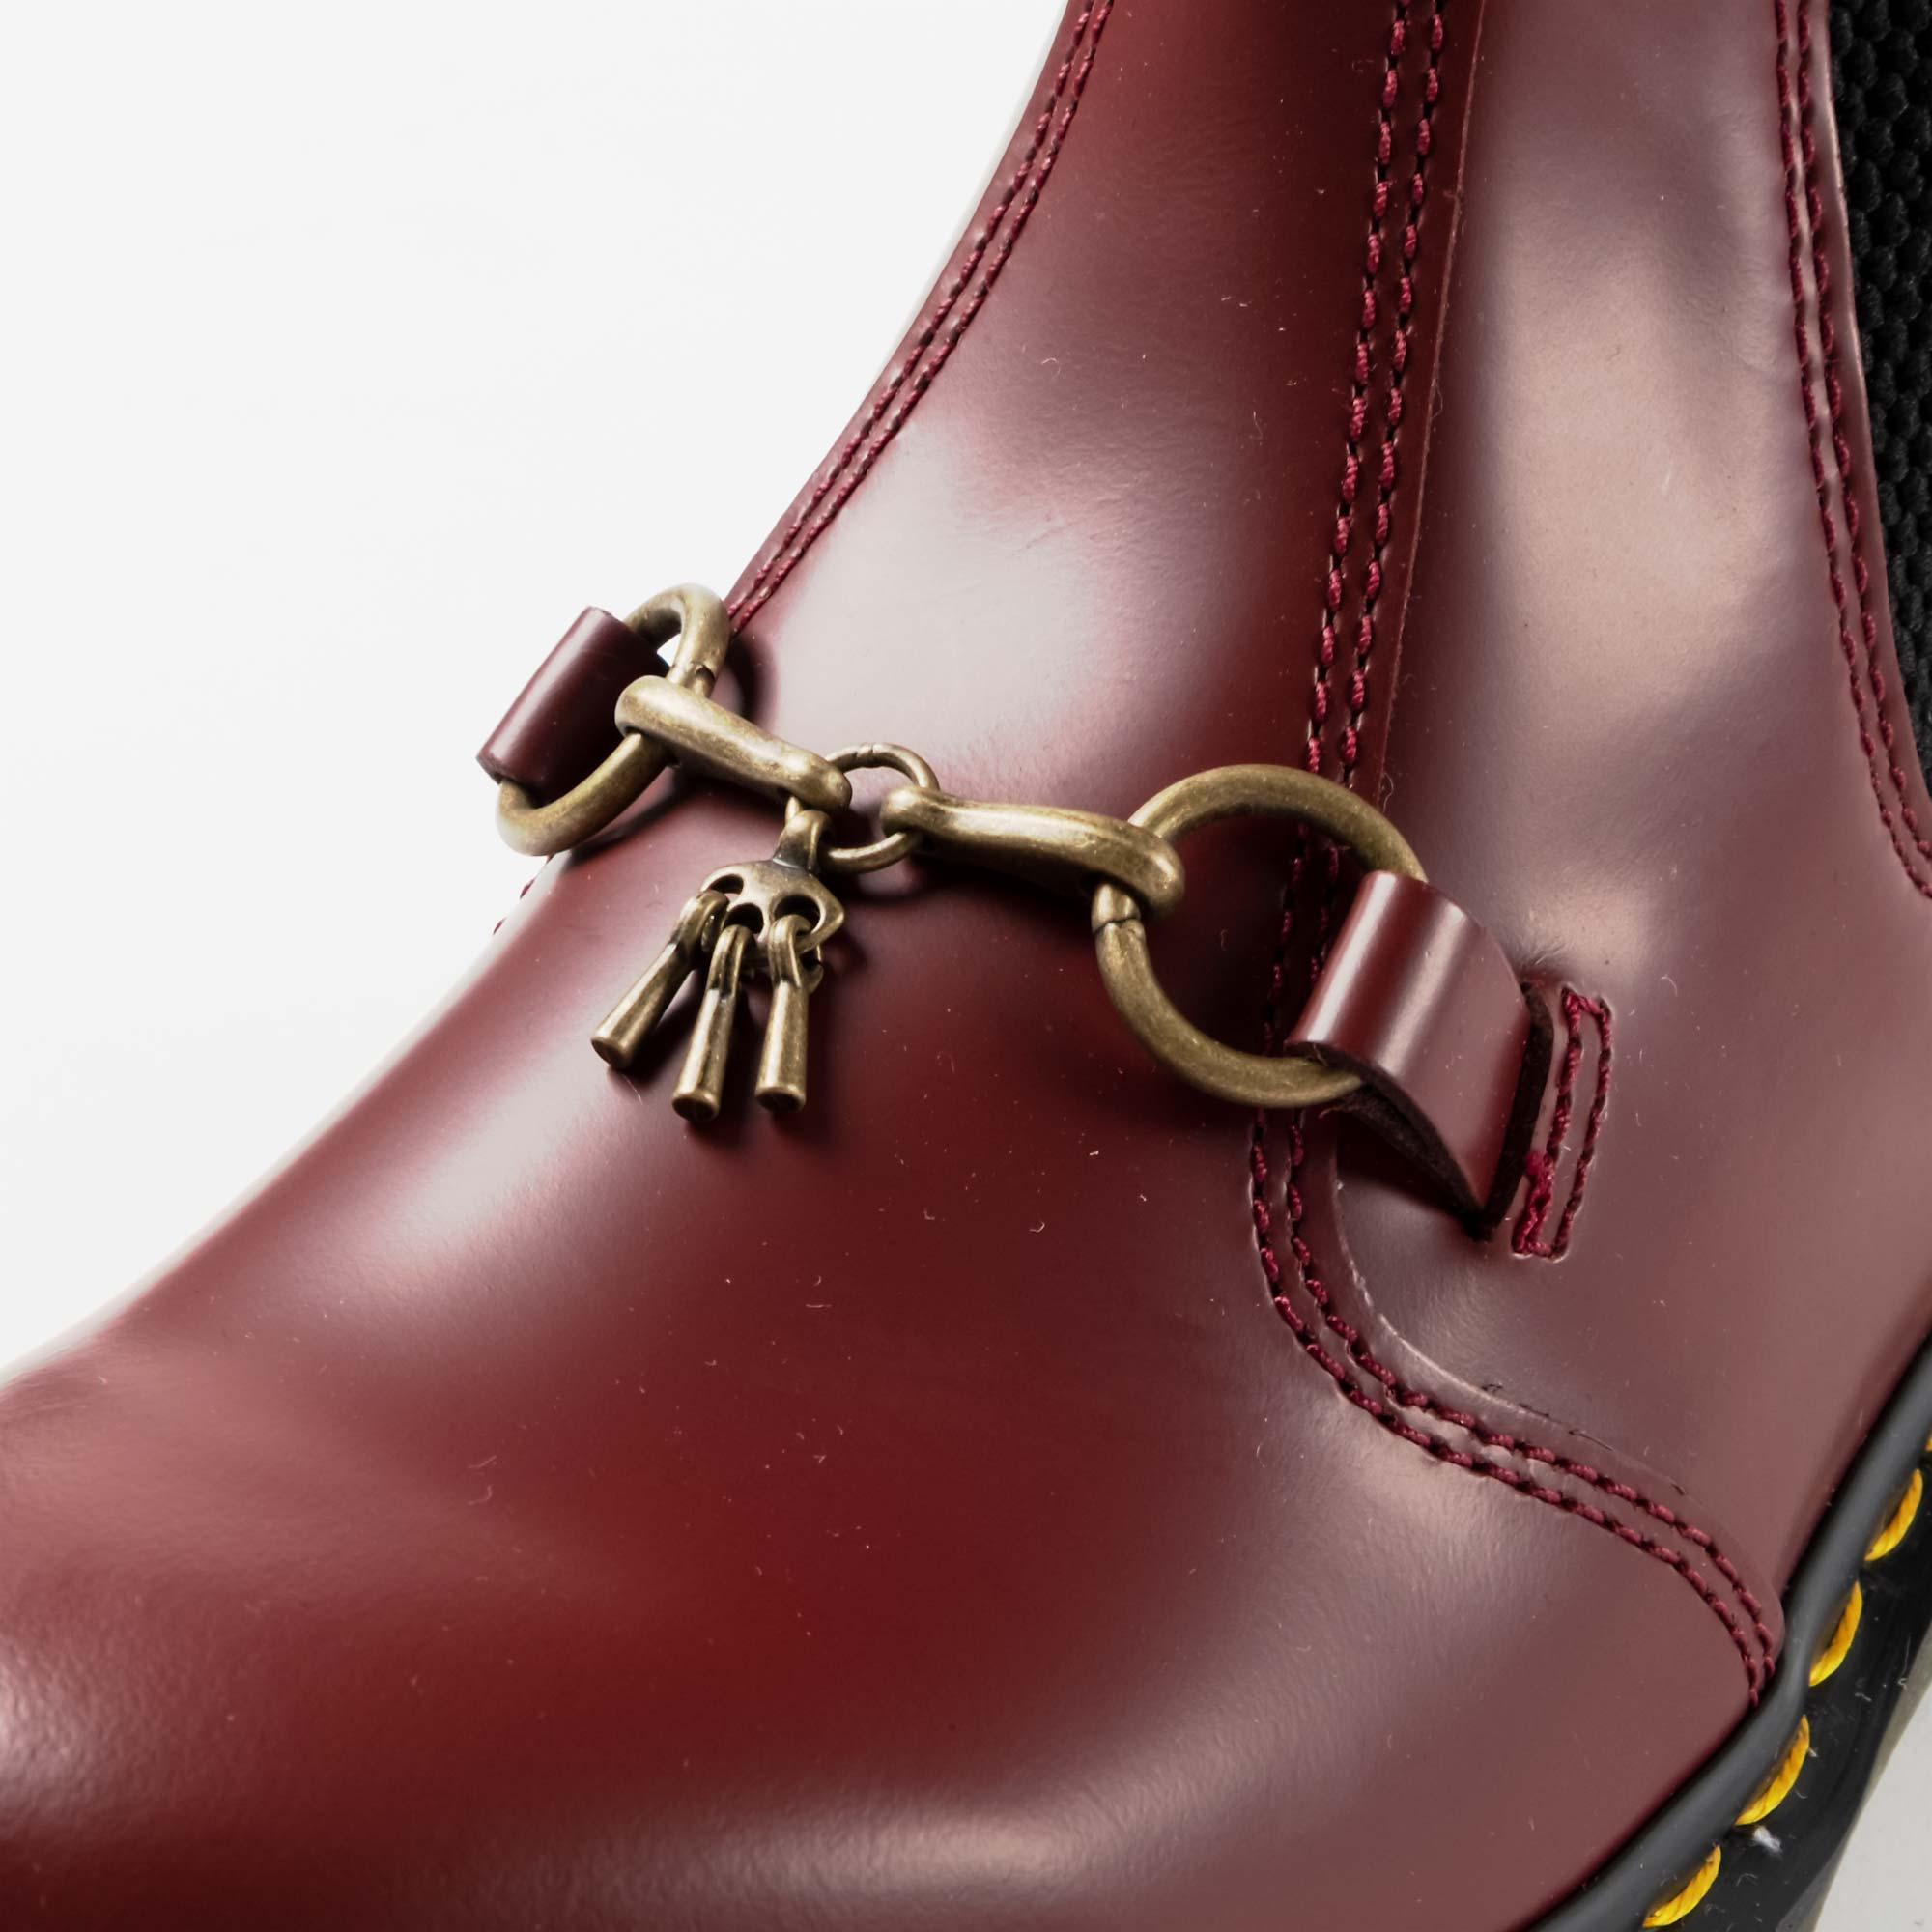 Needles Needles x Dr. Martens 2976 Snaffle - Cherry Red 7